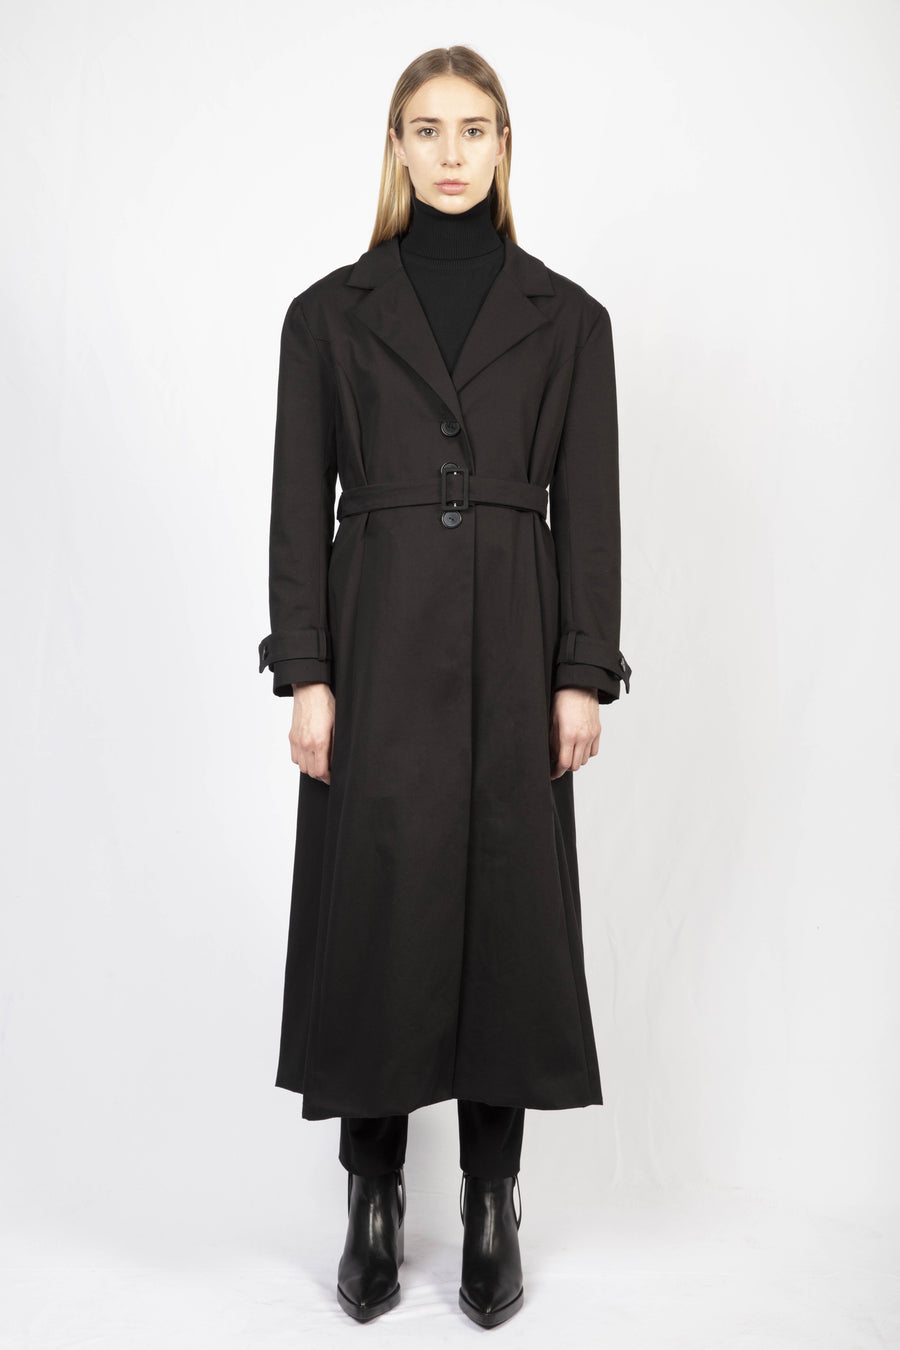 Cotton Trench Coat/Turtle Neck Knit Dress